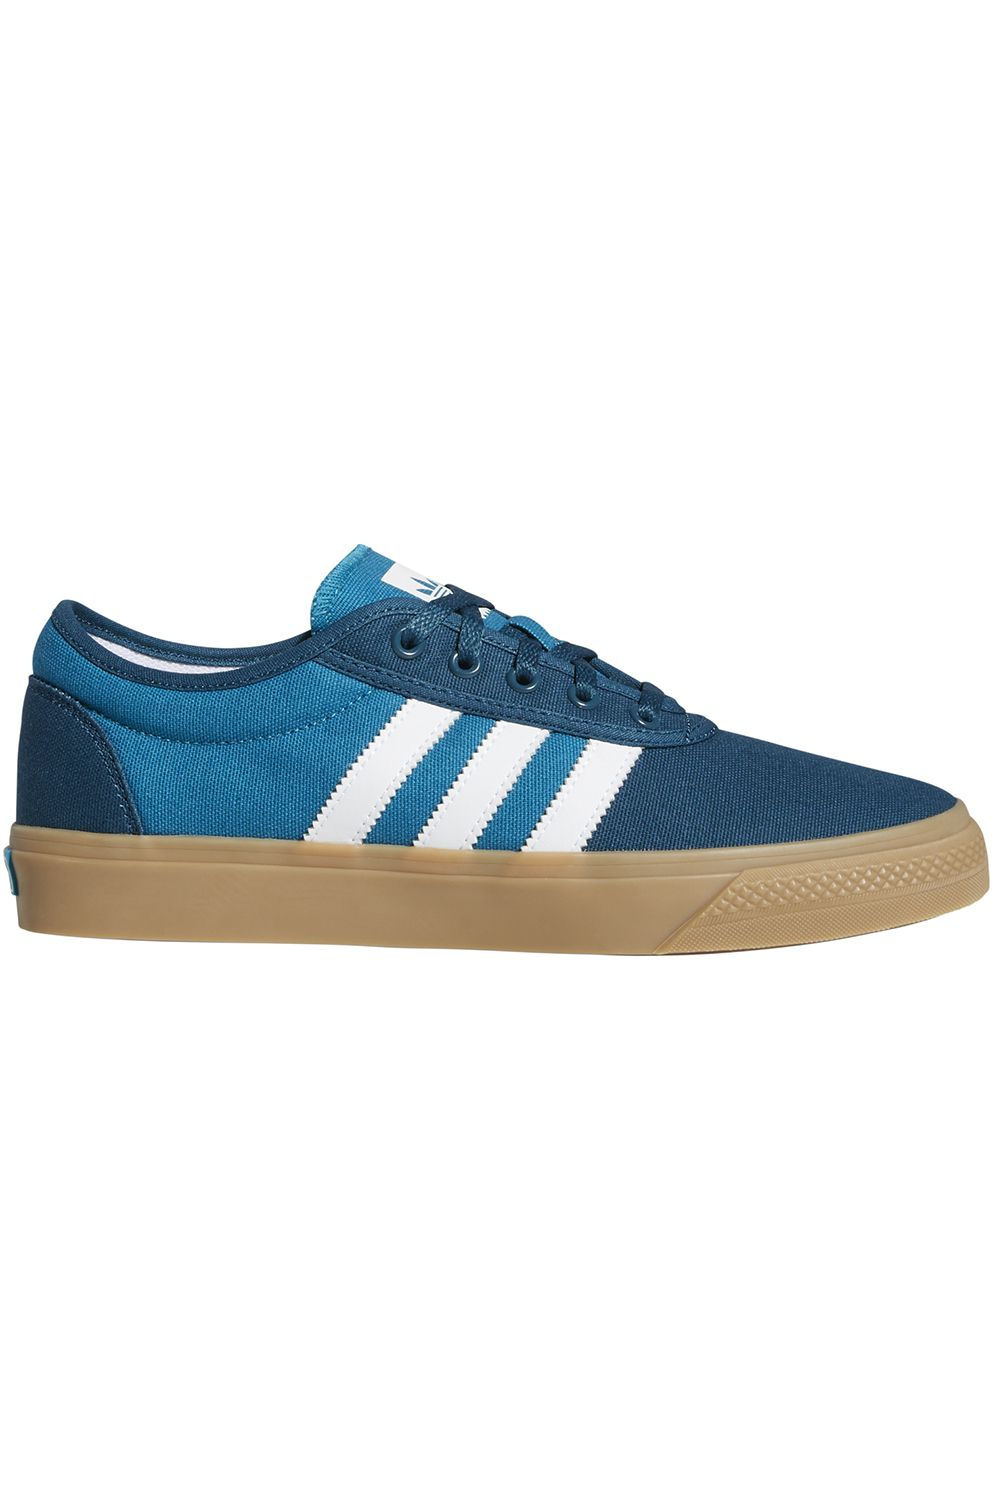 Tenis Adidas ADI-EASE Tech Mineral/Ftwr White/Active Teal